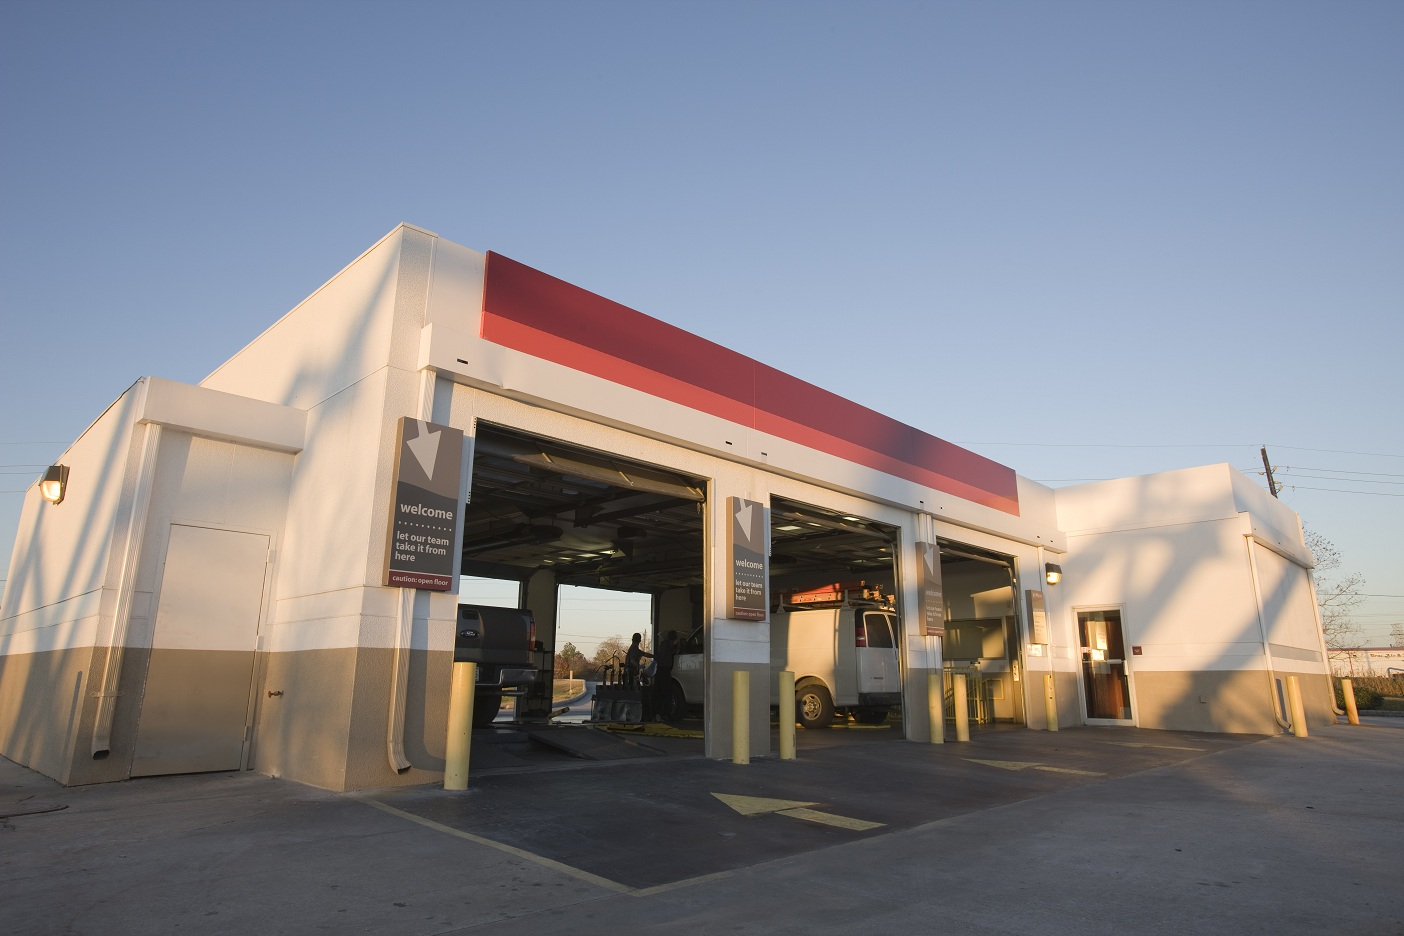 Jiffy Lube in Simi Valley, CA